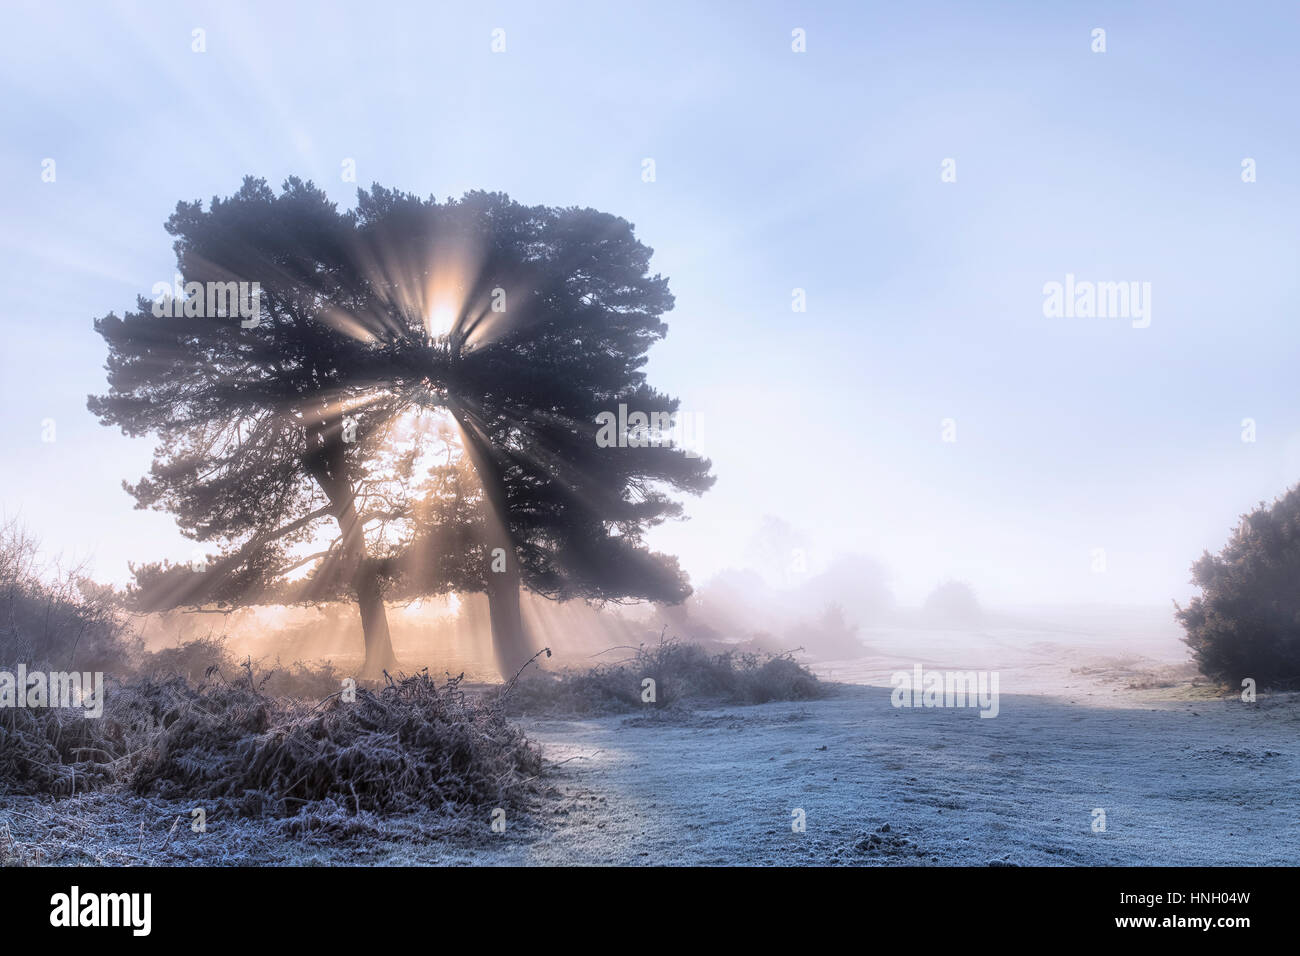 a tree in the fog on a frosty morning in Wilverley, New Forest, Hampshire, England, UK - Stock Image